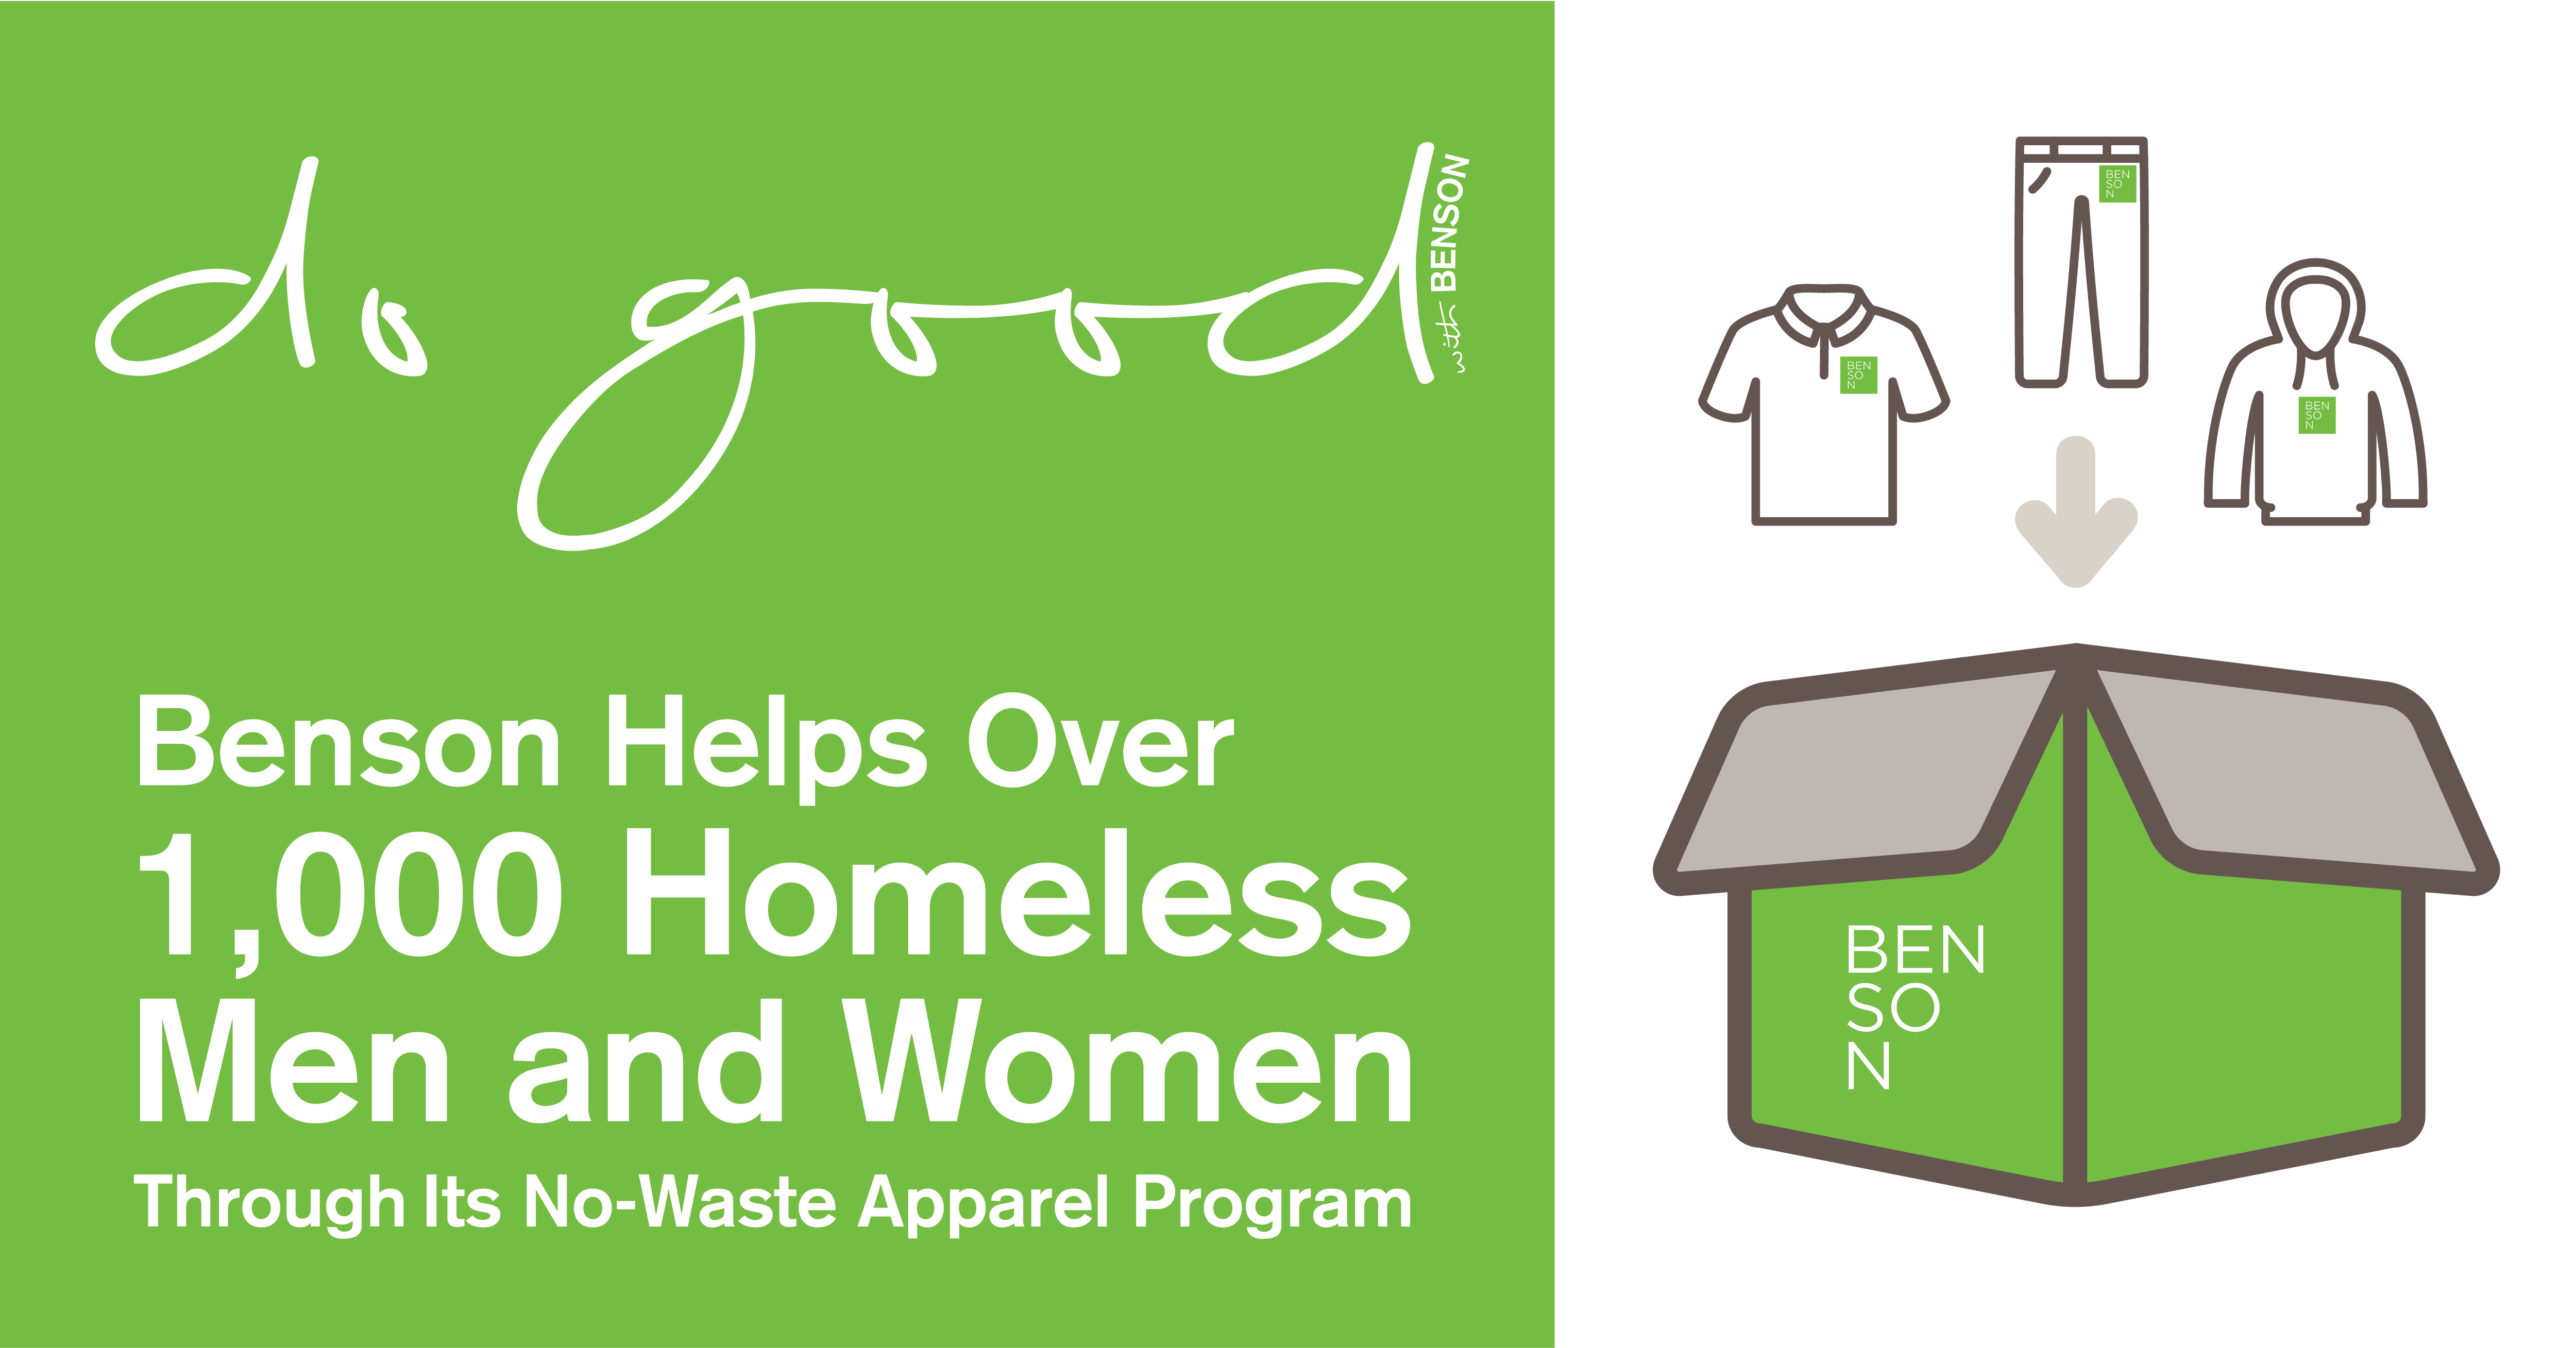 Benson Helps Over 1,000 Homeless Men and Women Through Its No-Waste Apparel Program